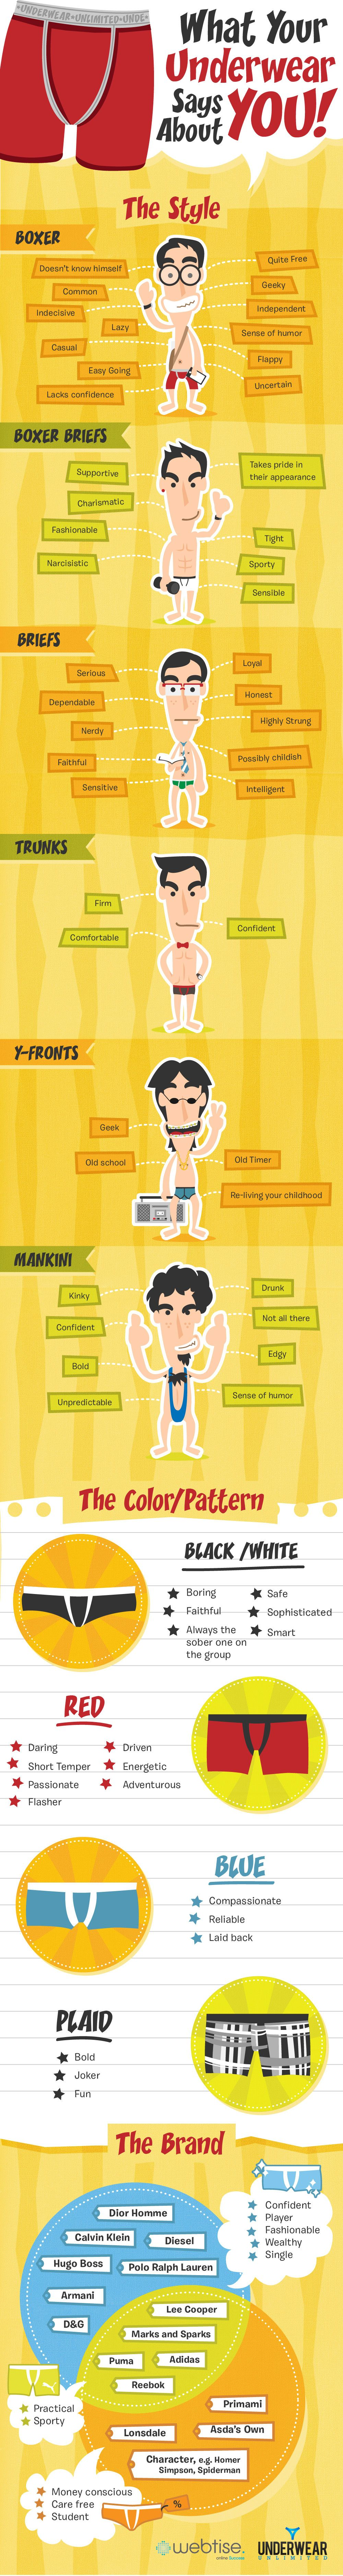 What your underwear say about you